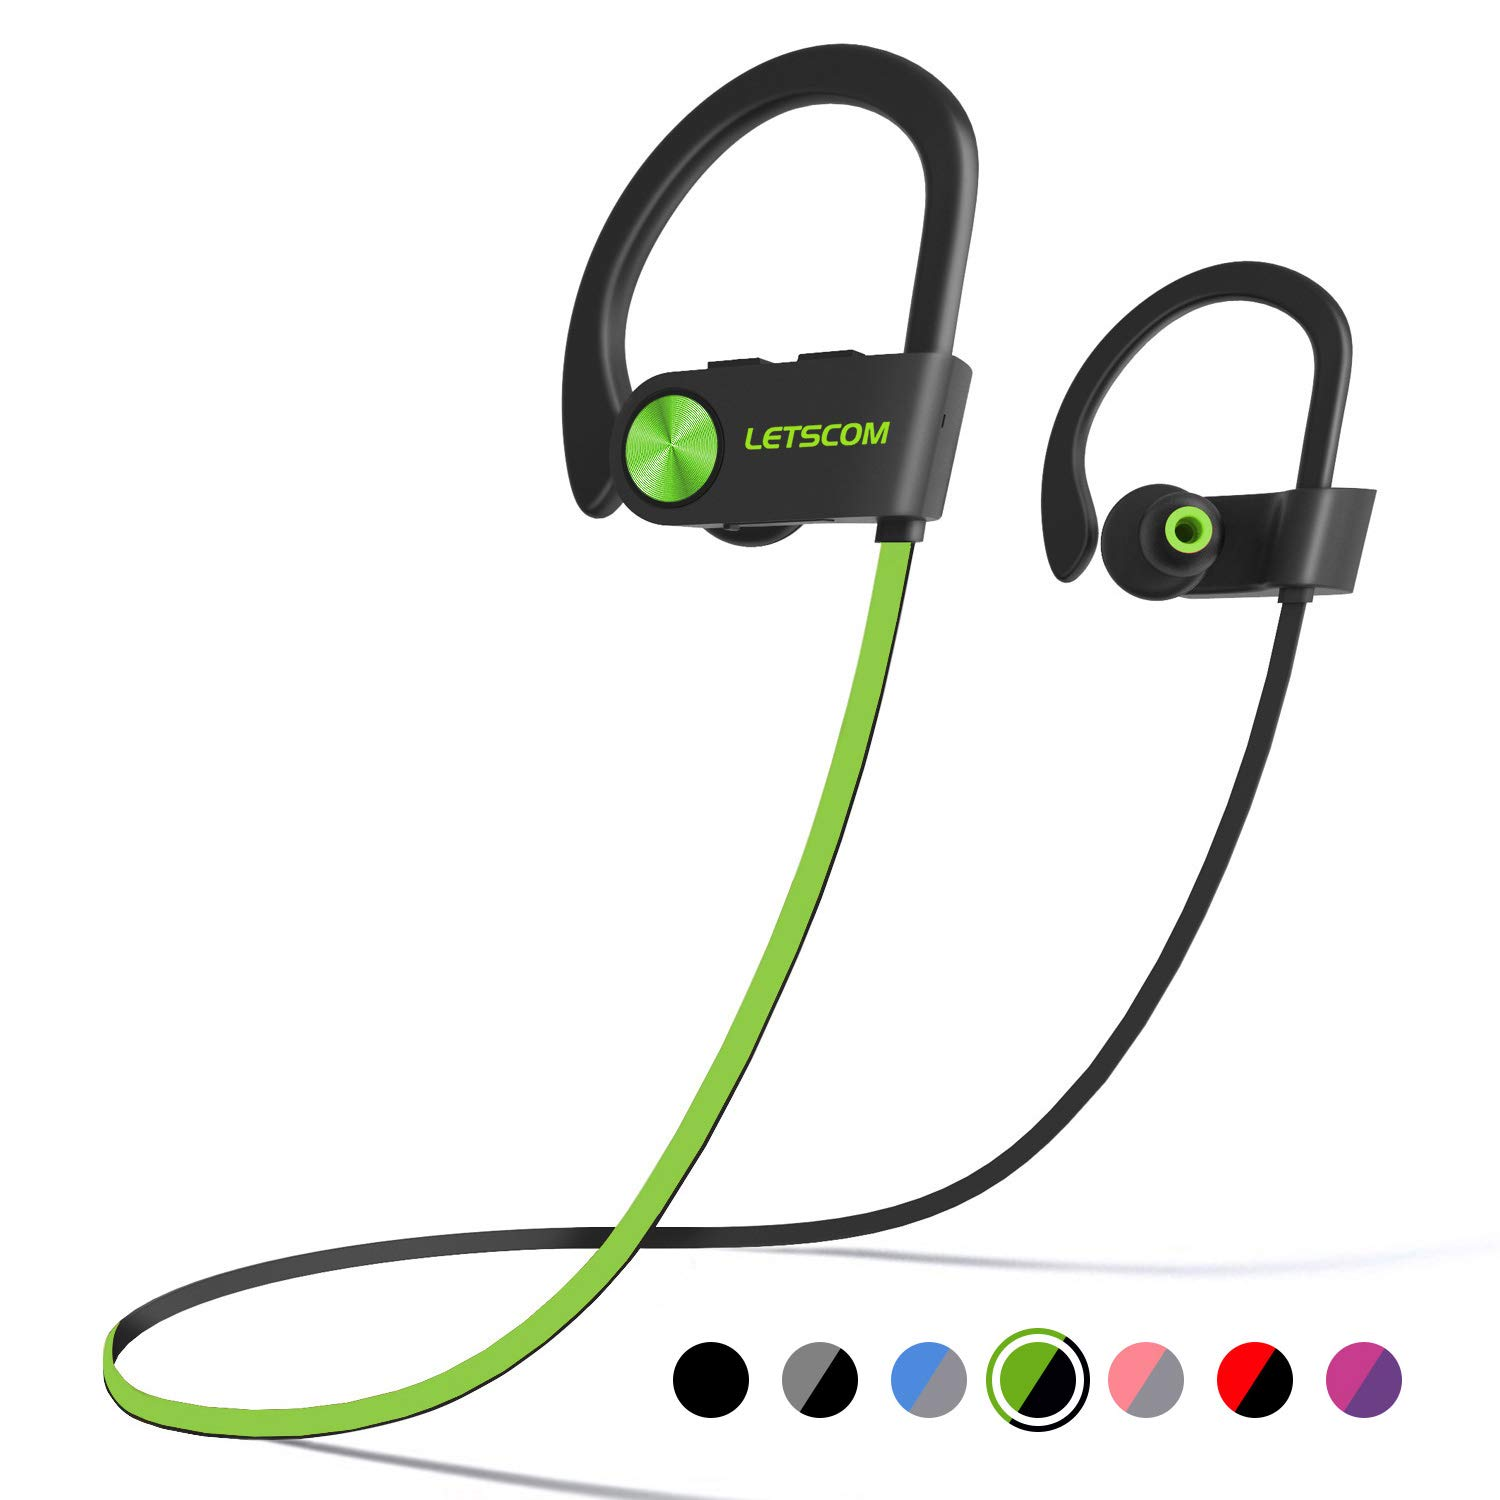 LETSCOM Headphones Waterproof Sweatproof Cancelling